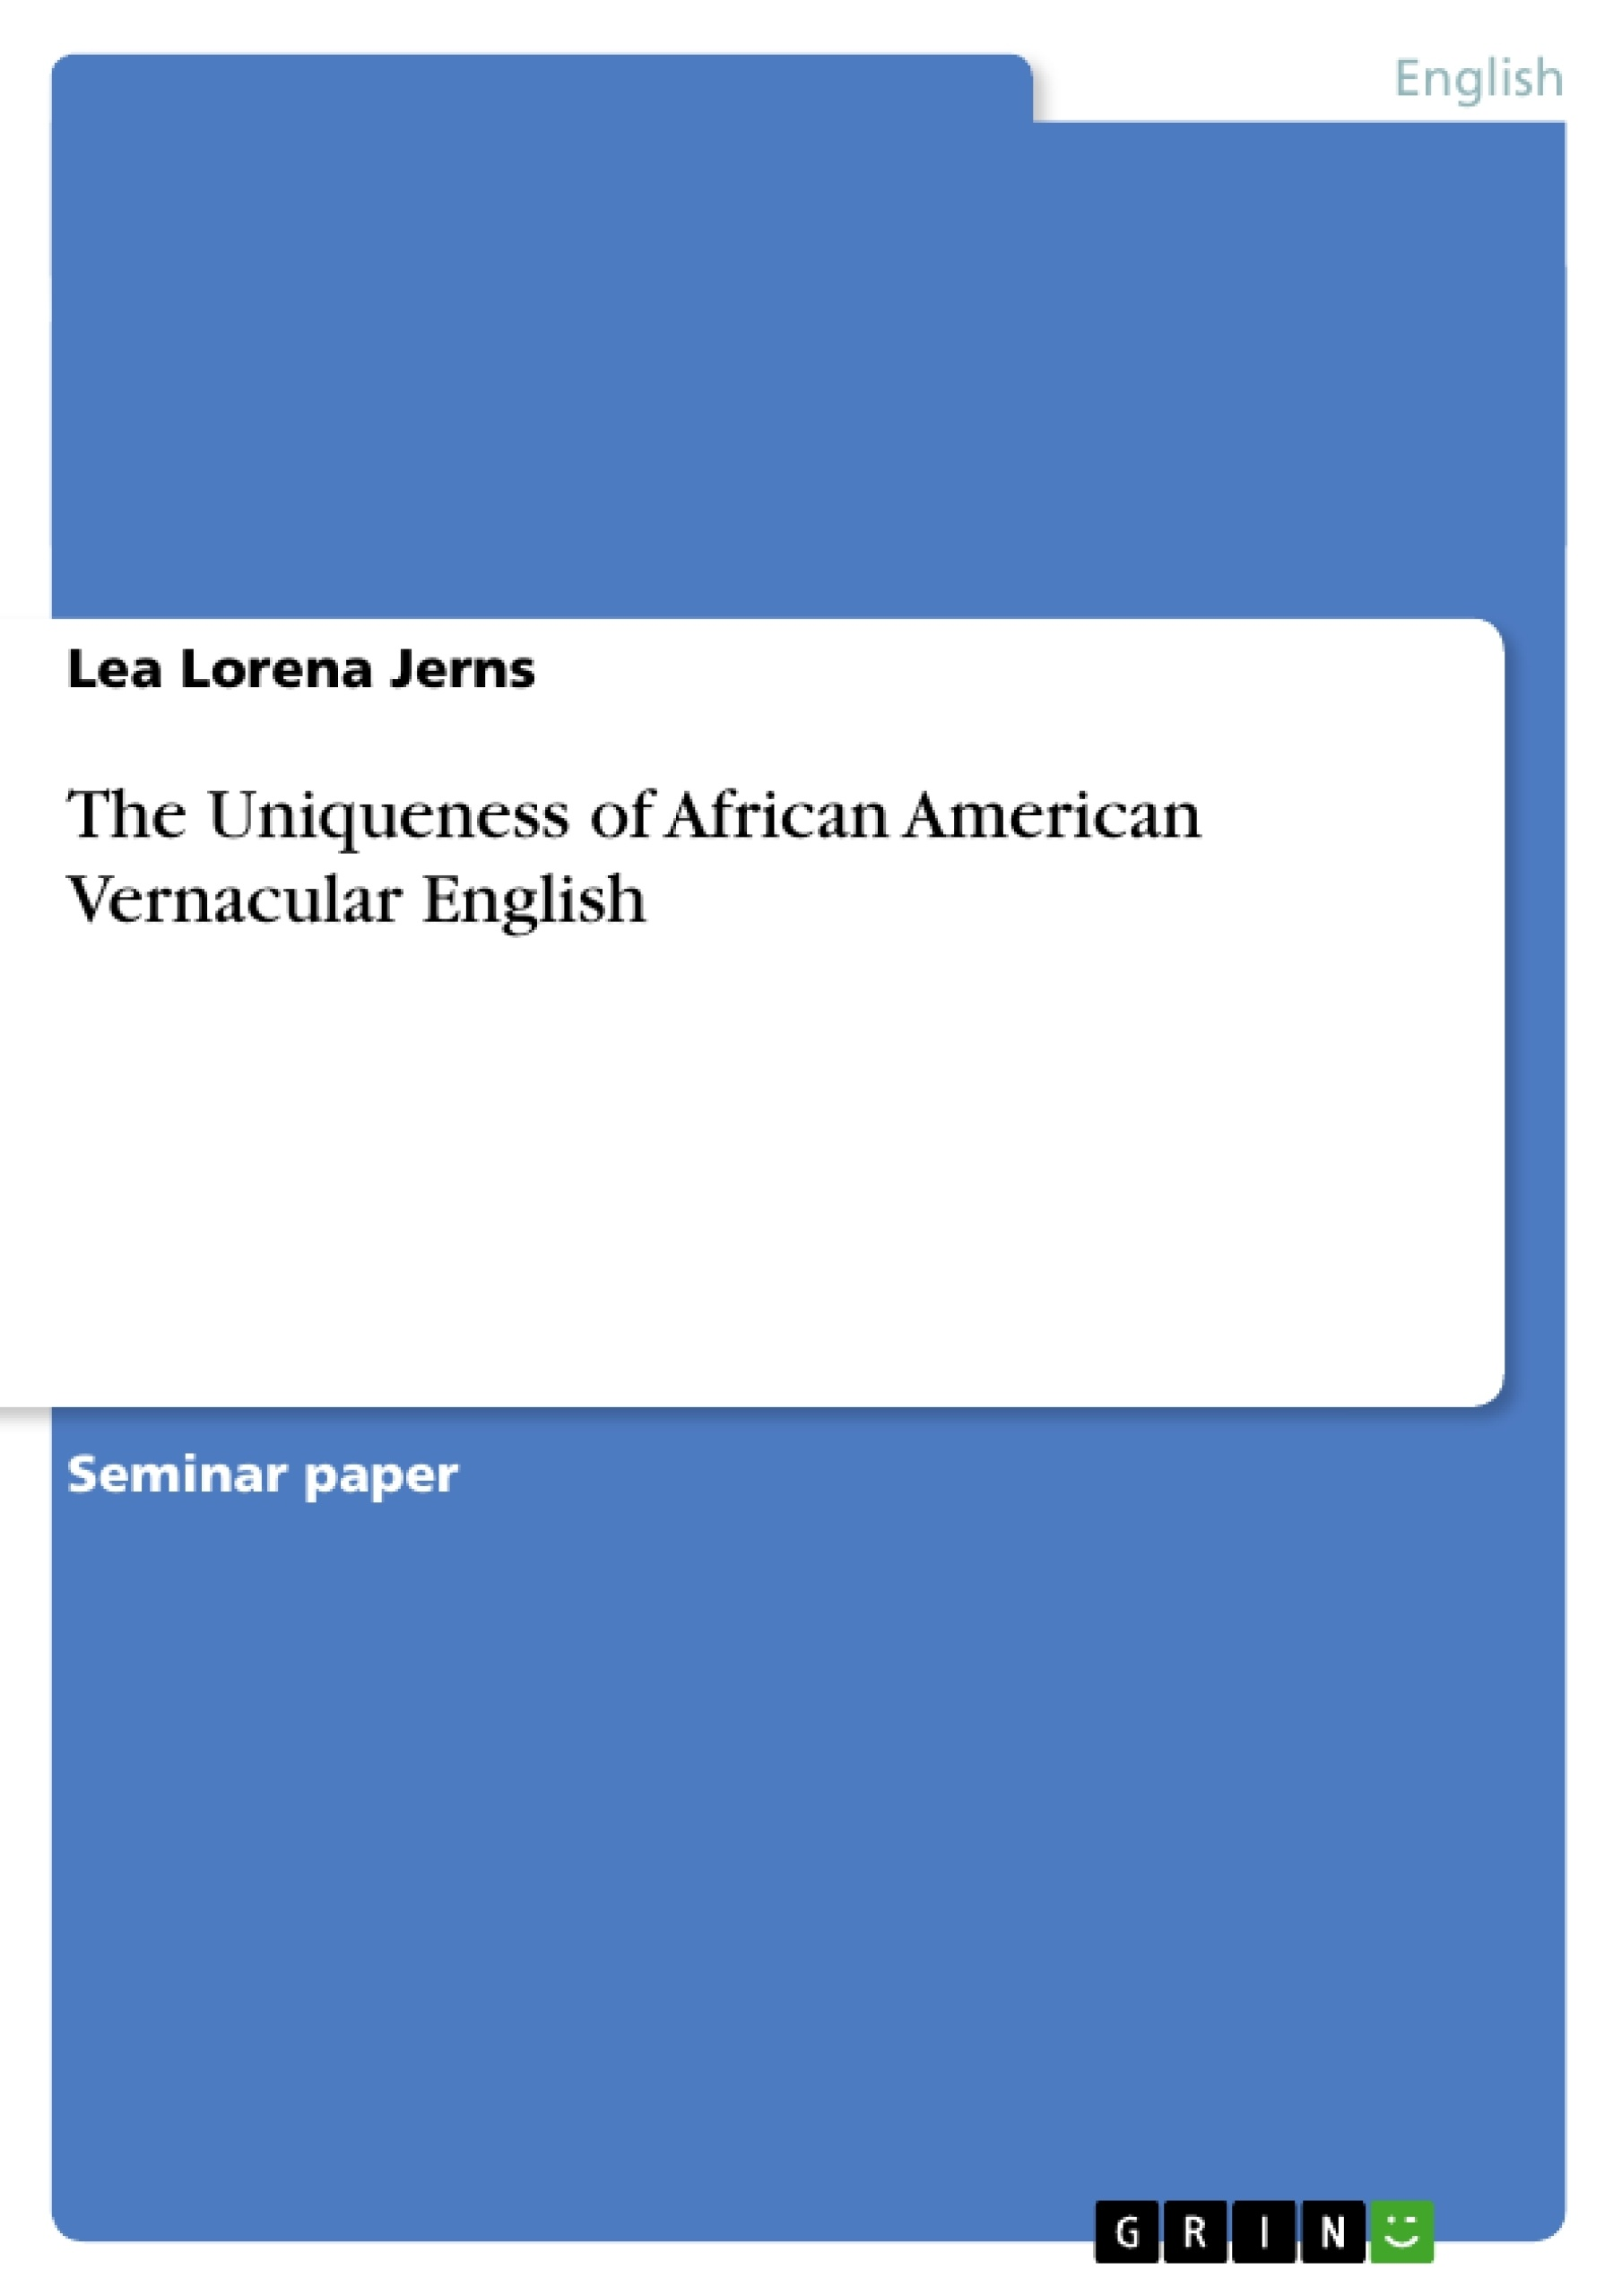 Title: The Uniqueness of African American Vernacular English